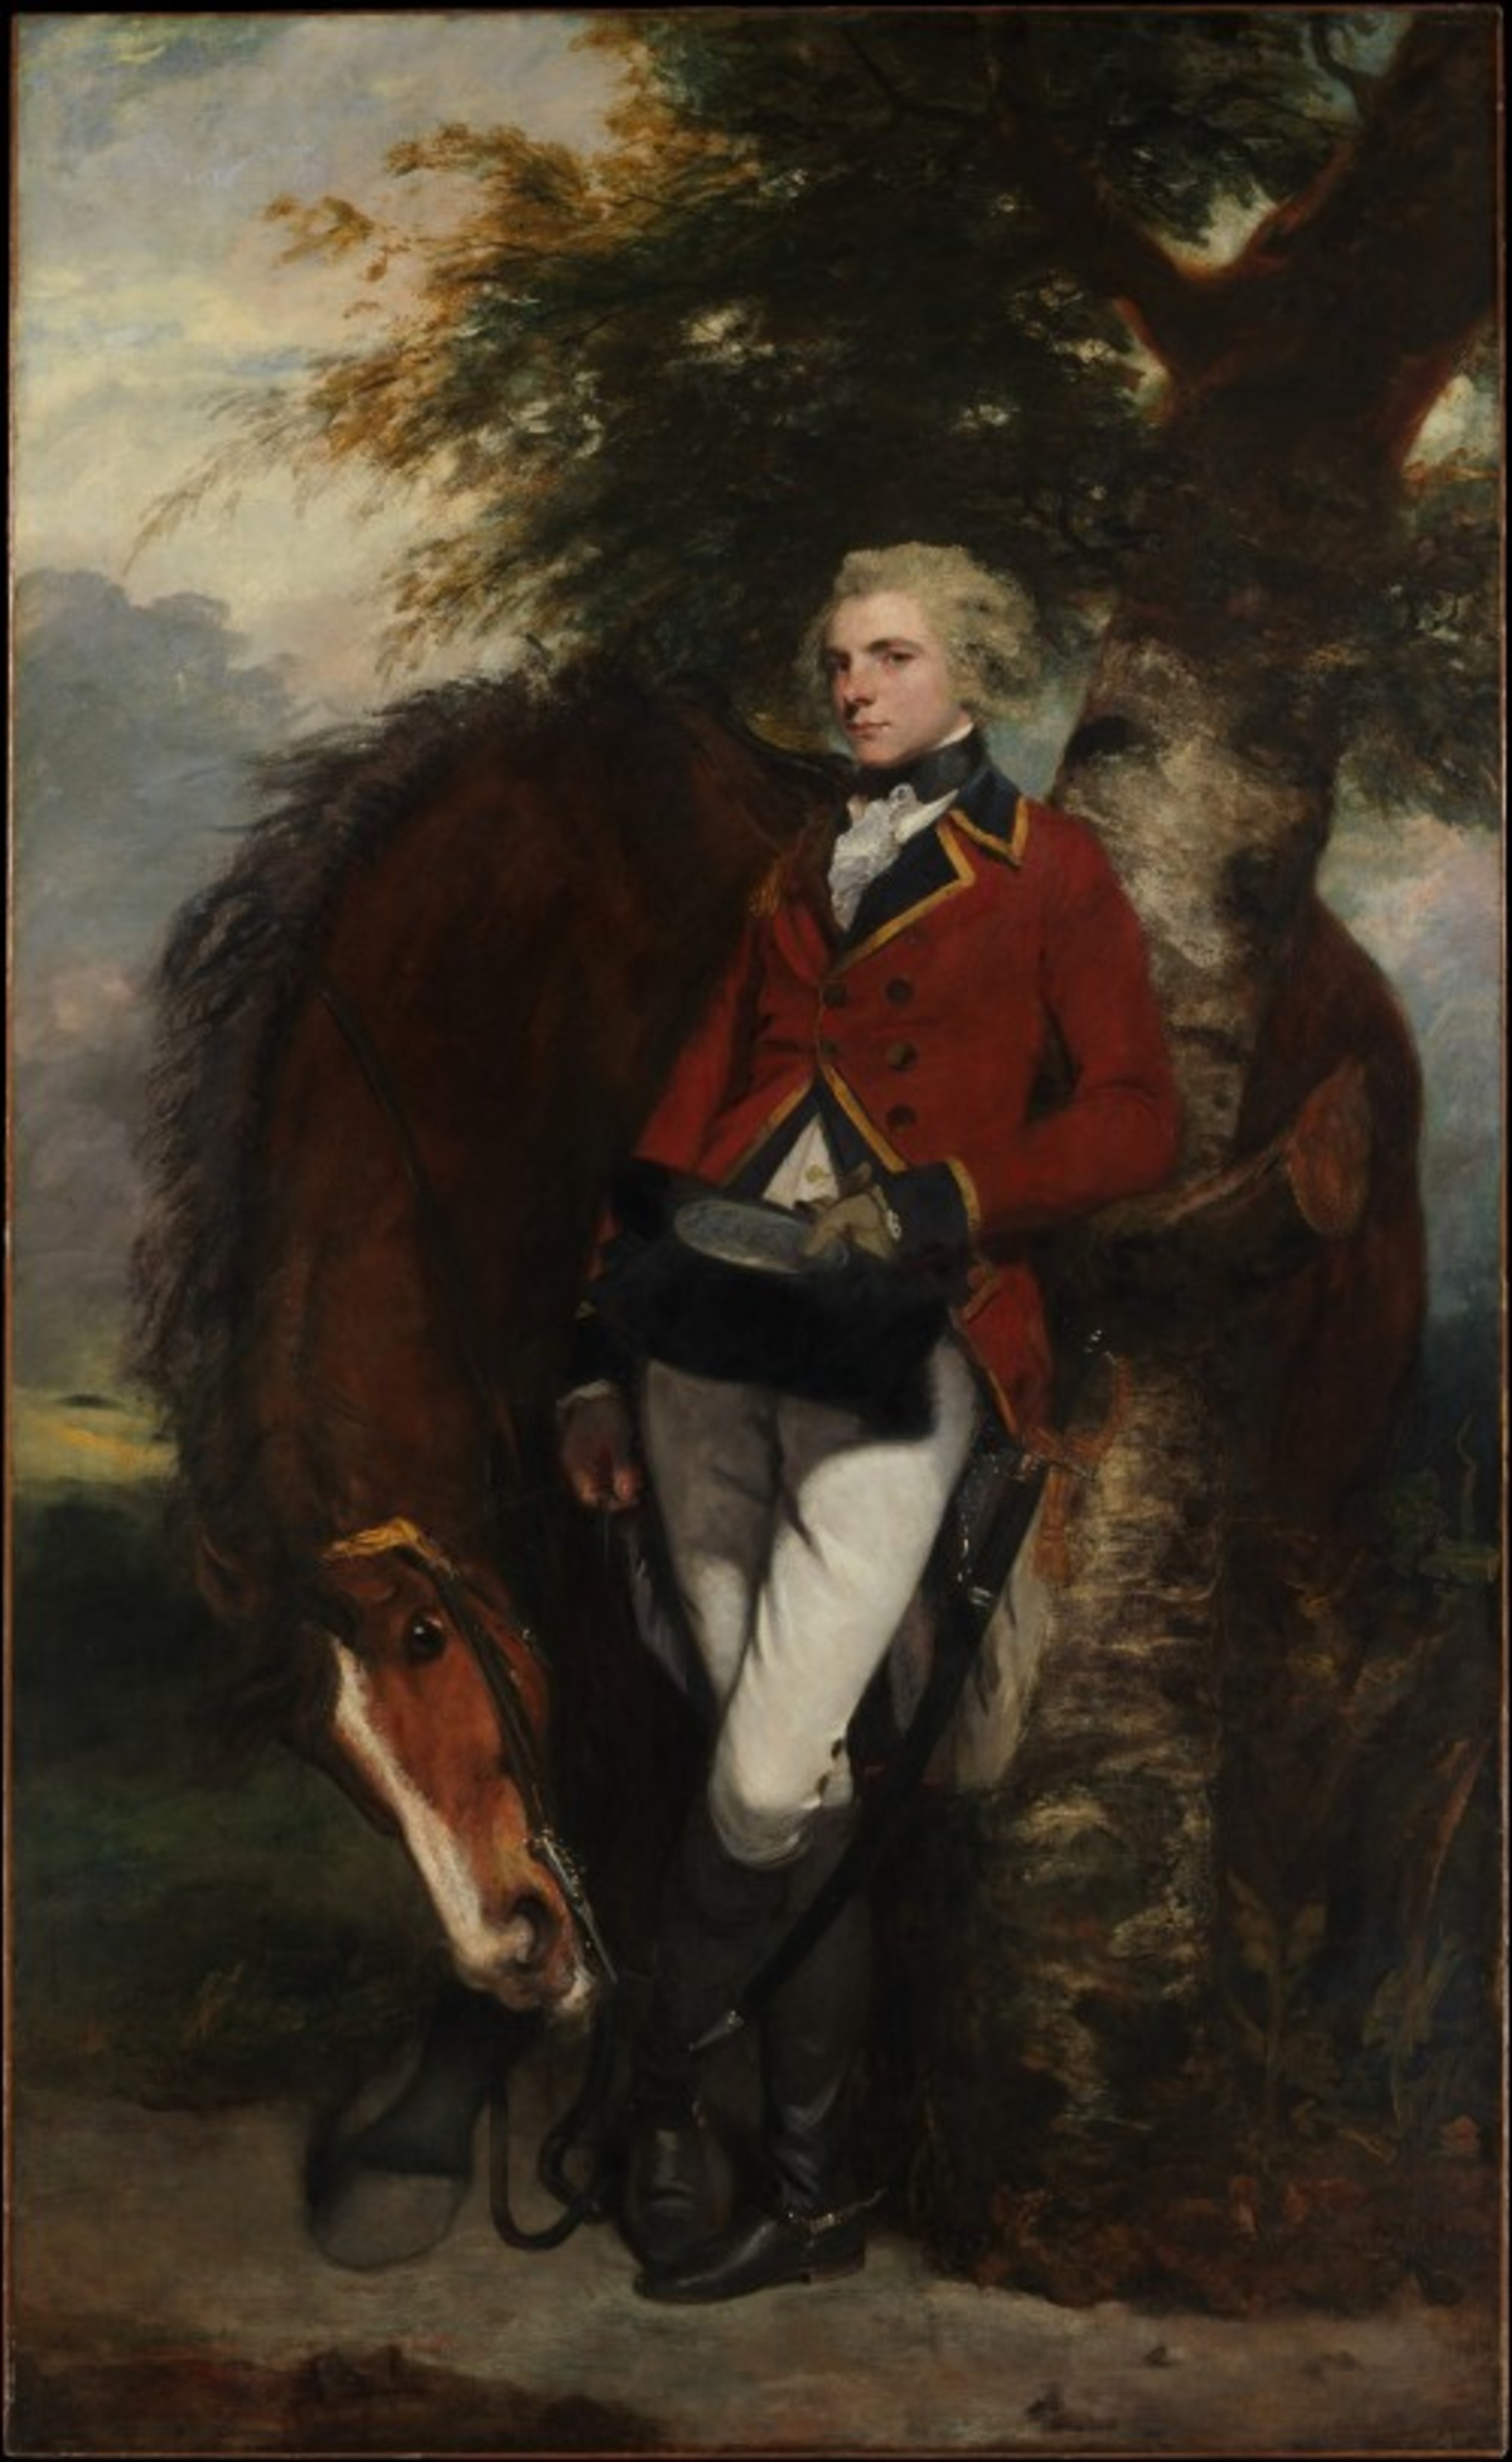 Colonel_George_K._H._Coussmaker_Grenadier_Guards_by_Joshua_Reynolds_1782.jpg